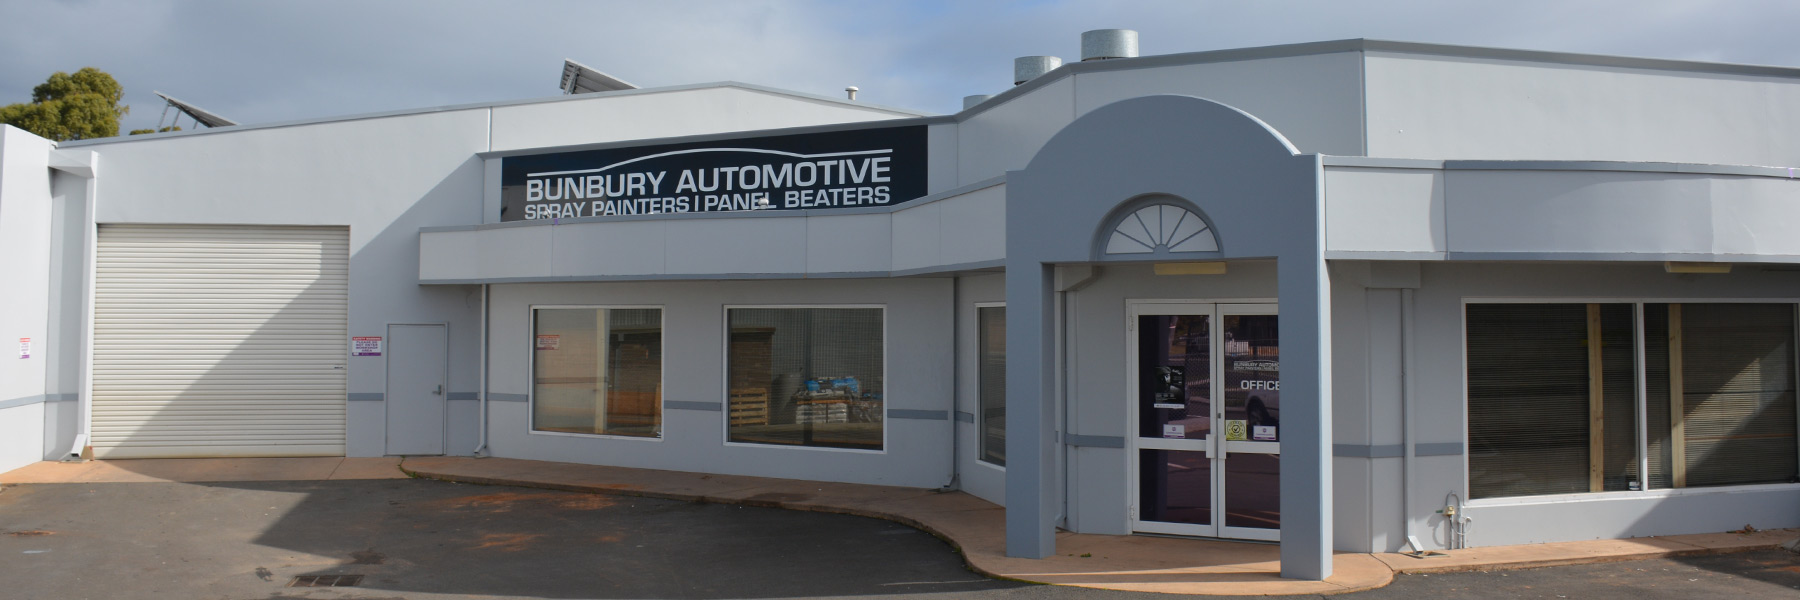 Bunbury Automotive Spraypainters | Panel Beaters | Home